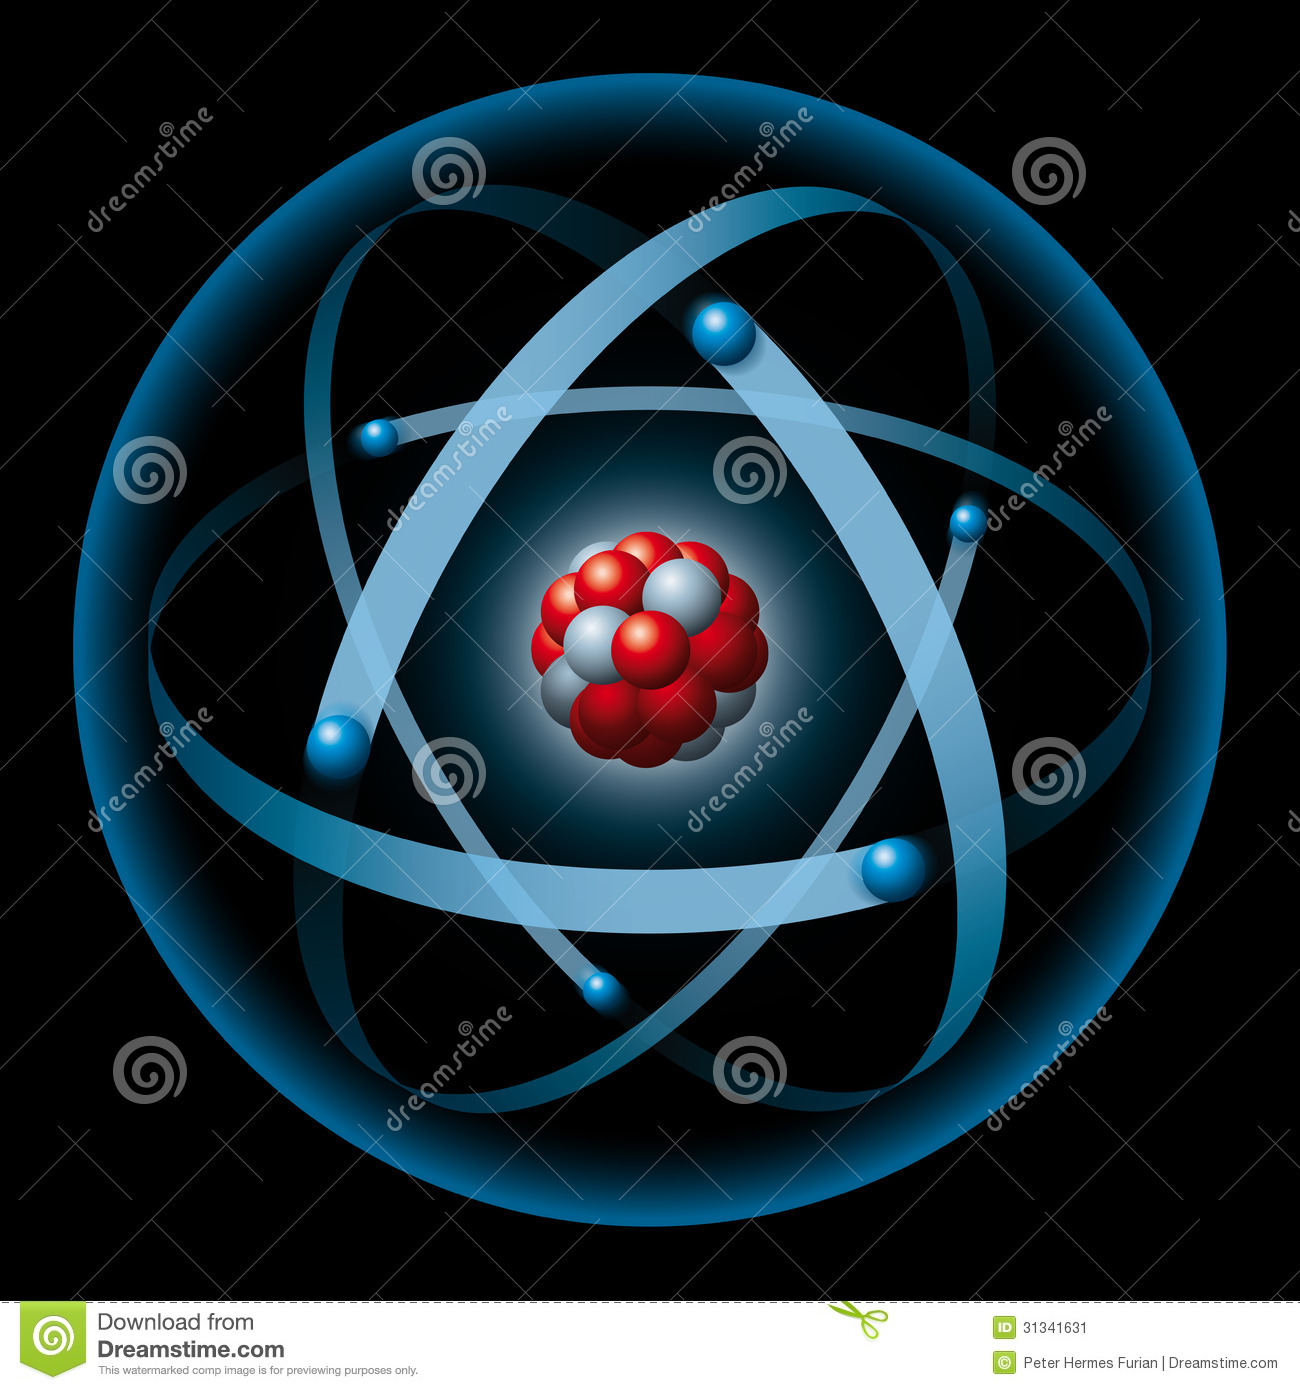 Atom Having Nucleus And Electrons